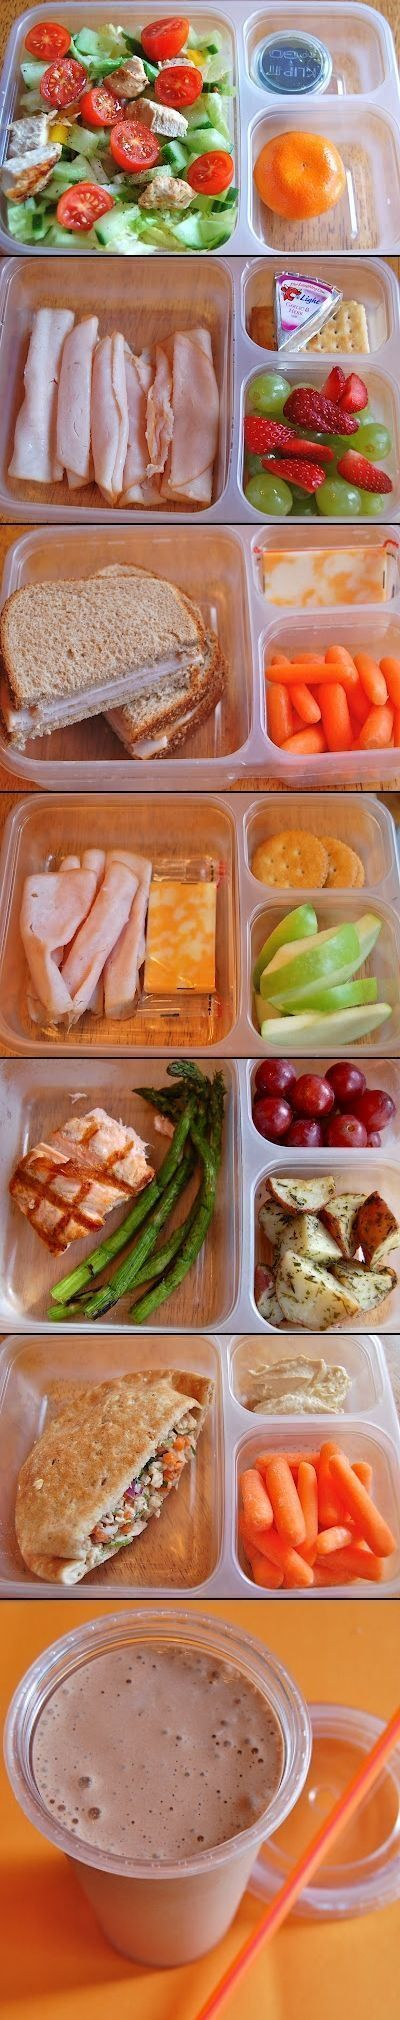 Ideas For Packing A Delicious, Healthy Lunch.: